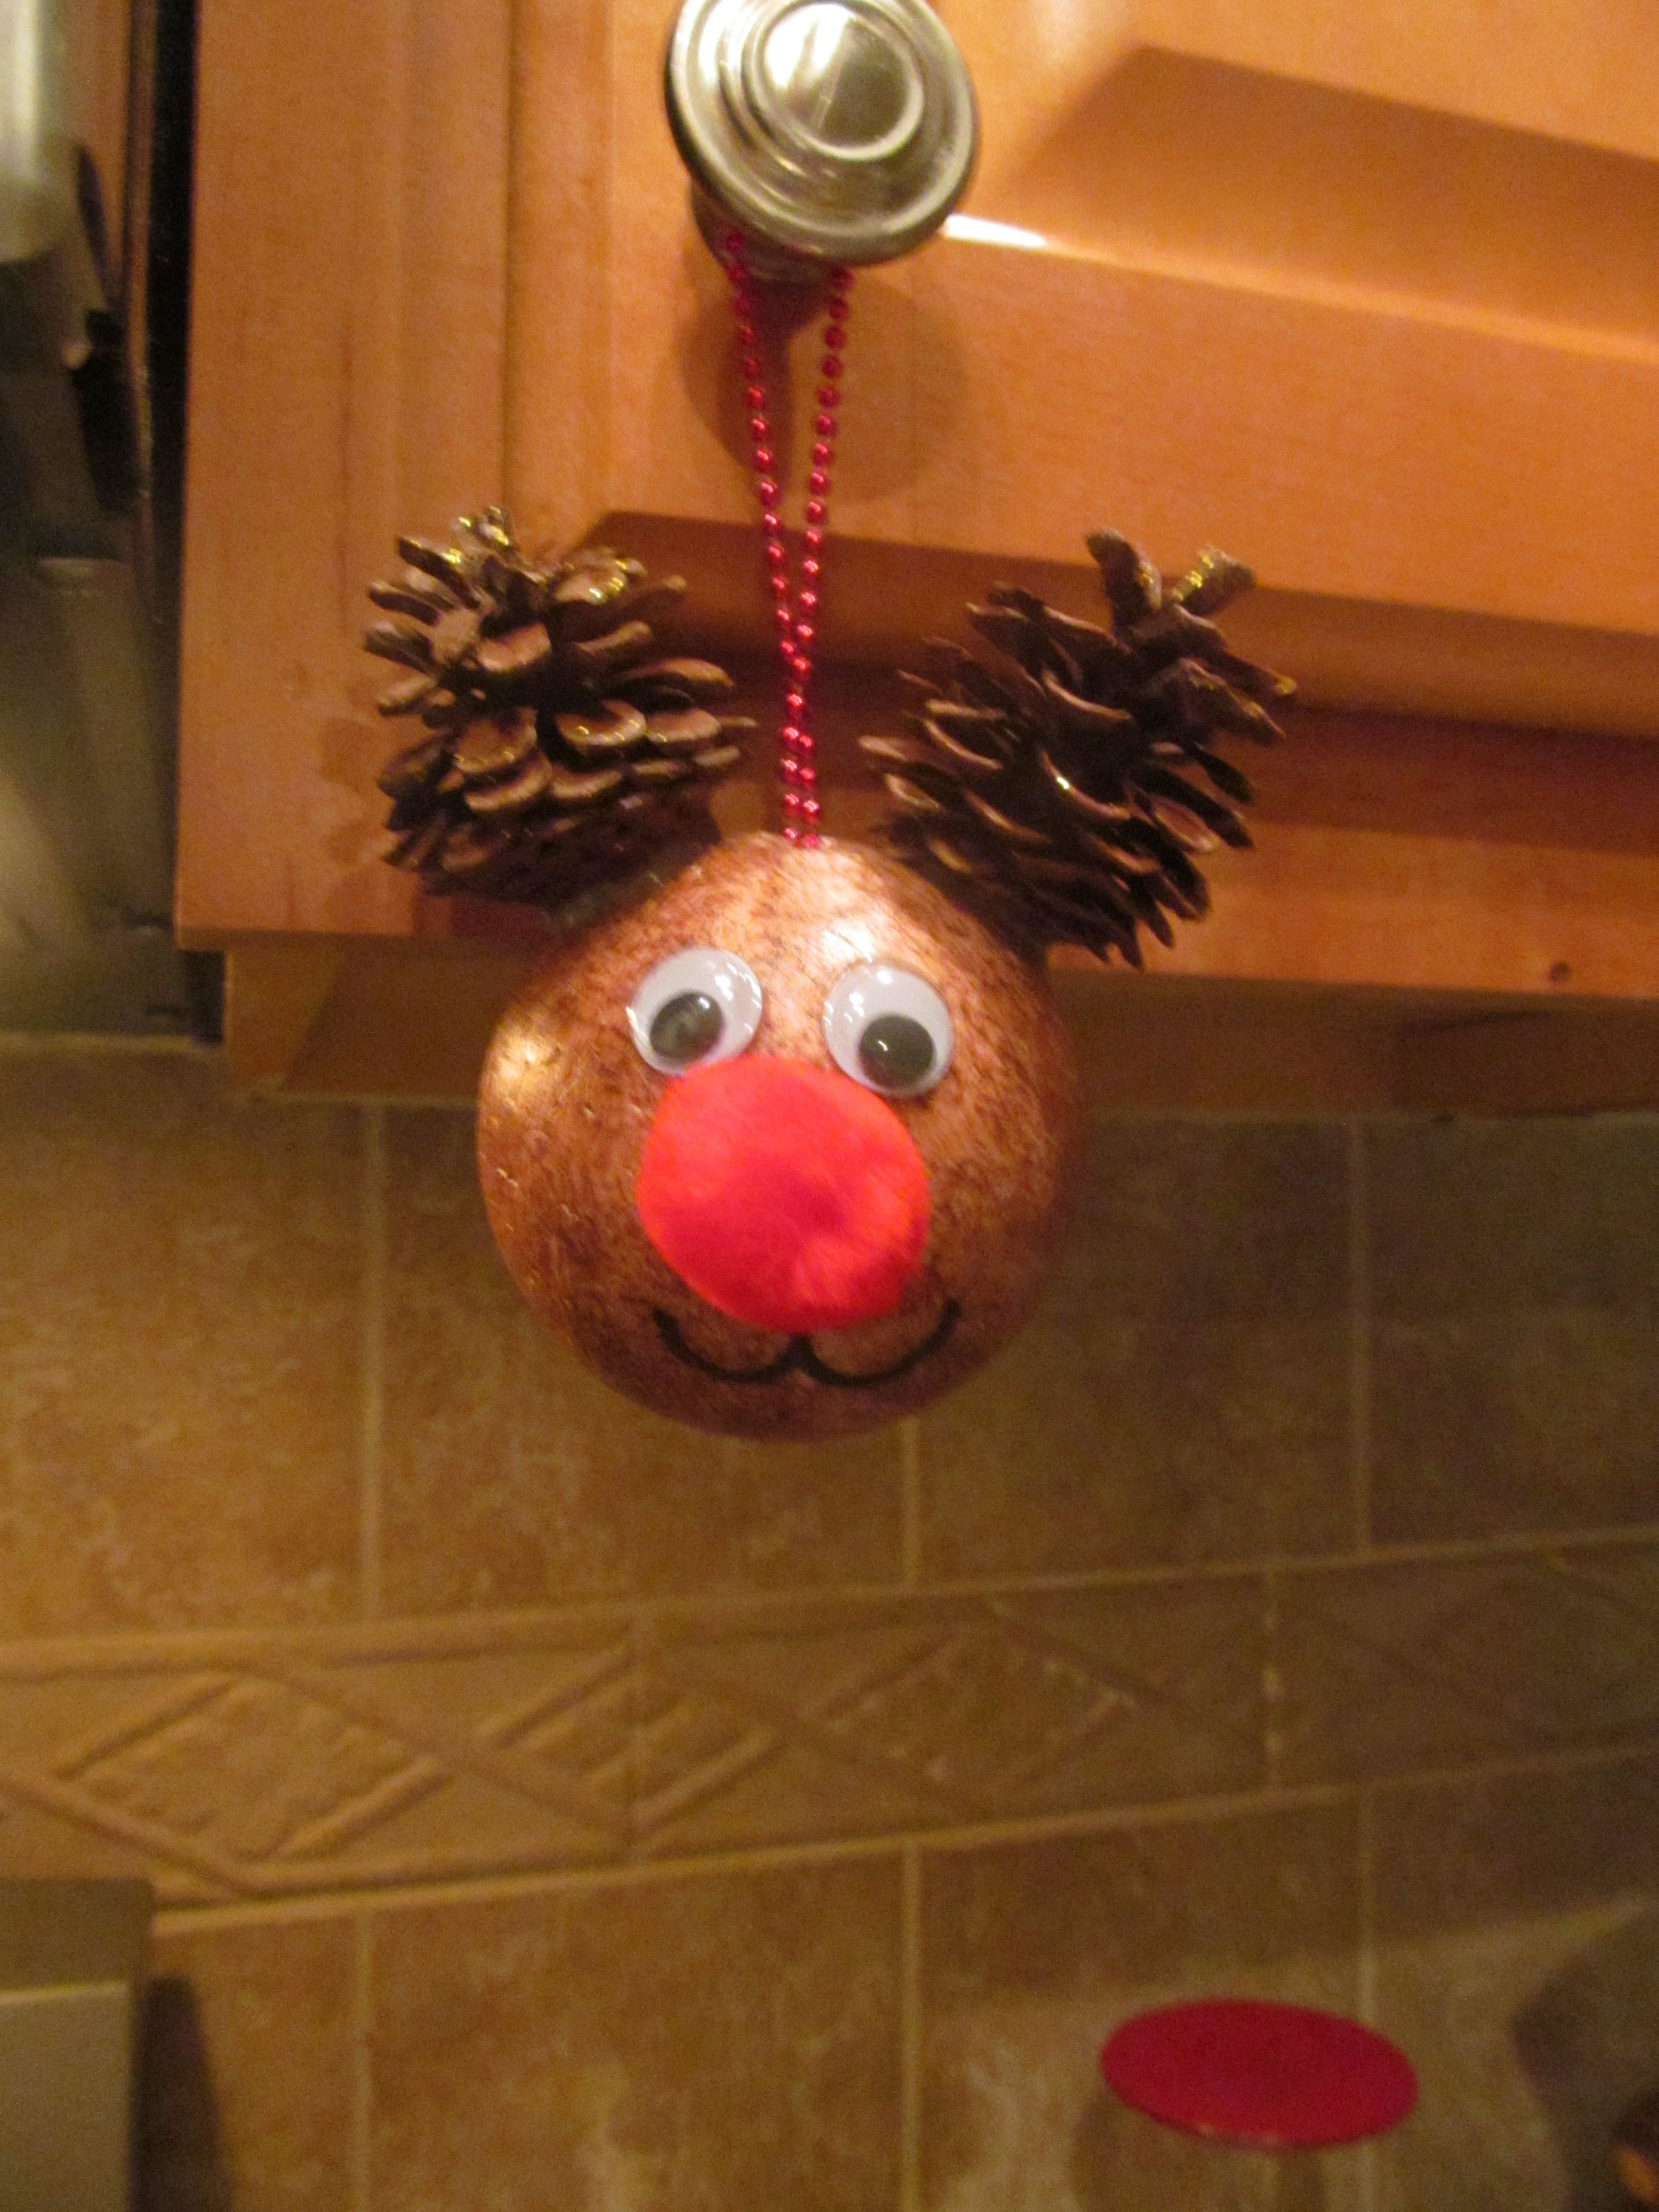 Reindeer Ornament Made From Styrofoam Ball Painted Brown Googly Eyes Red Pom Pom And Pine Cones Also Us Christmas Crafts Xmas Crafts Styrofoam Ball Crafts